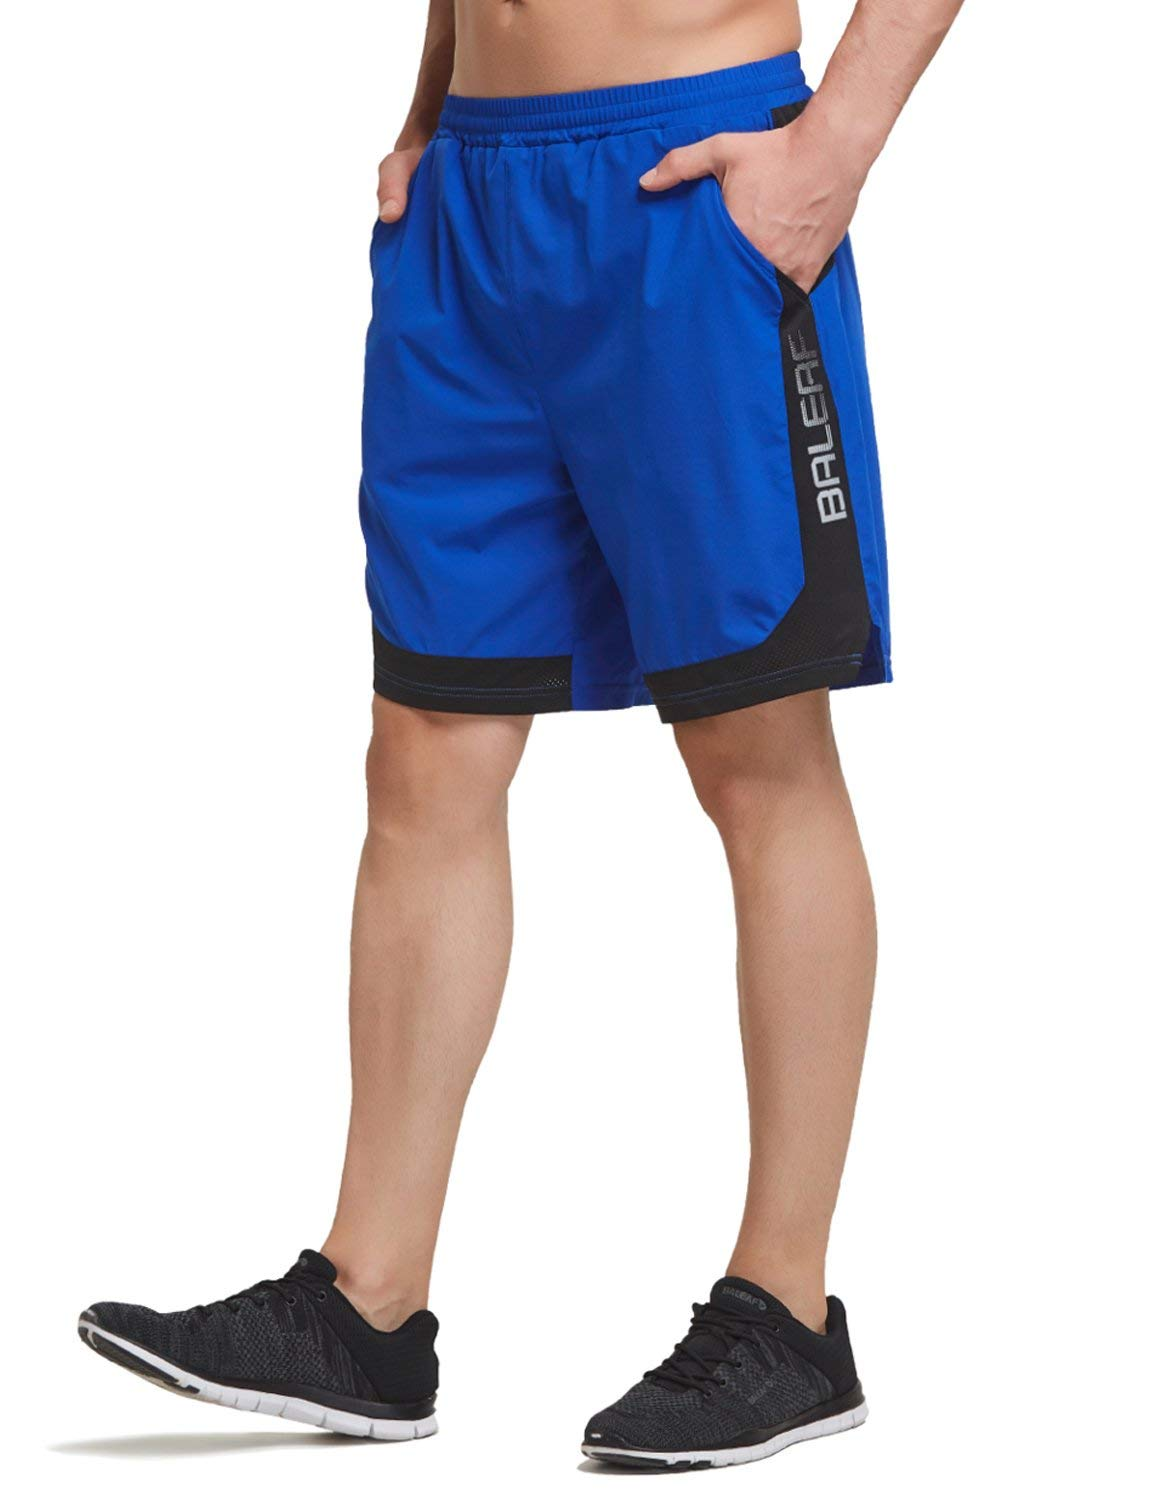 Baleaf Men's 7 Inches Quick Dry Running Shorts Mesh Liner Zip Pockets Royal Blue Size XXL by Baleaf